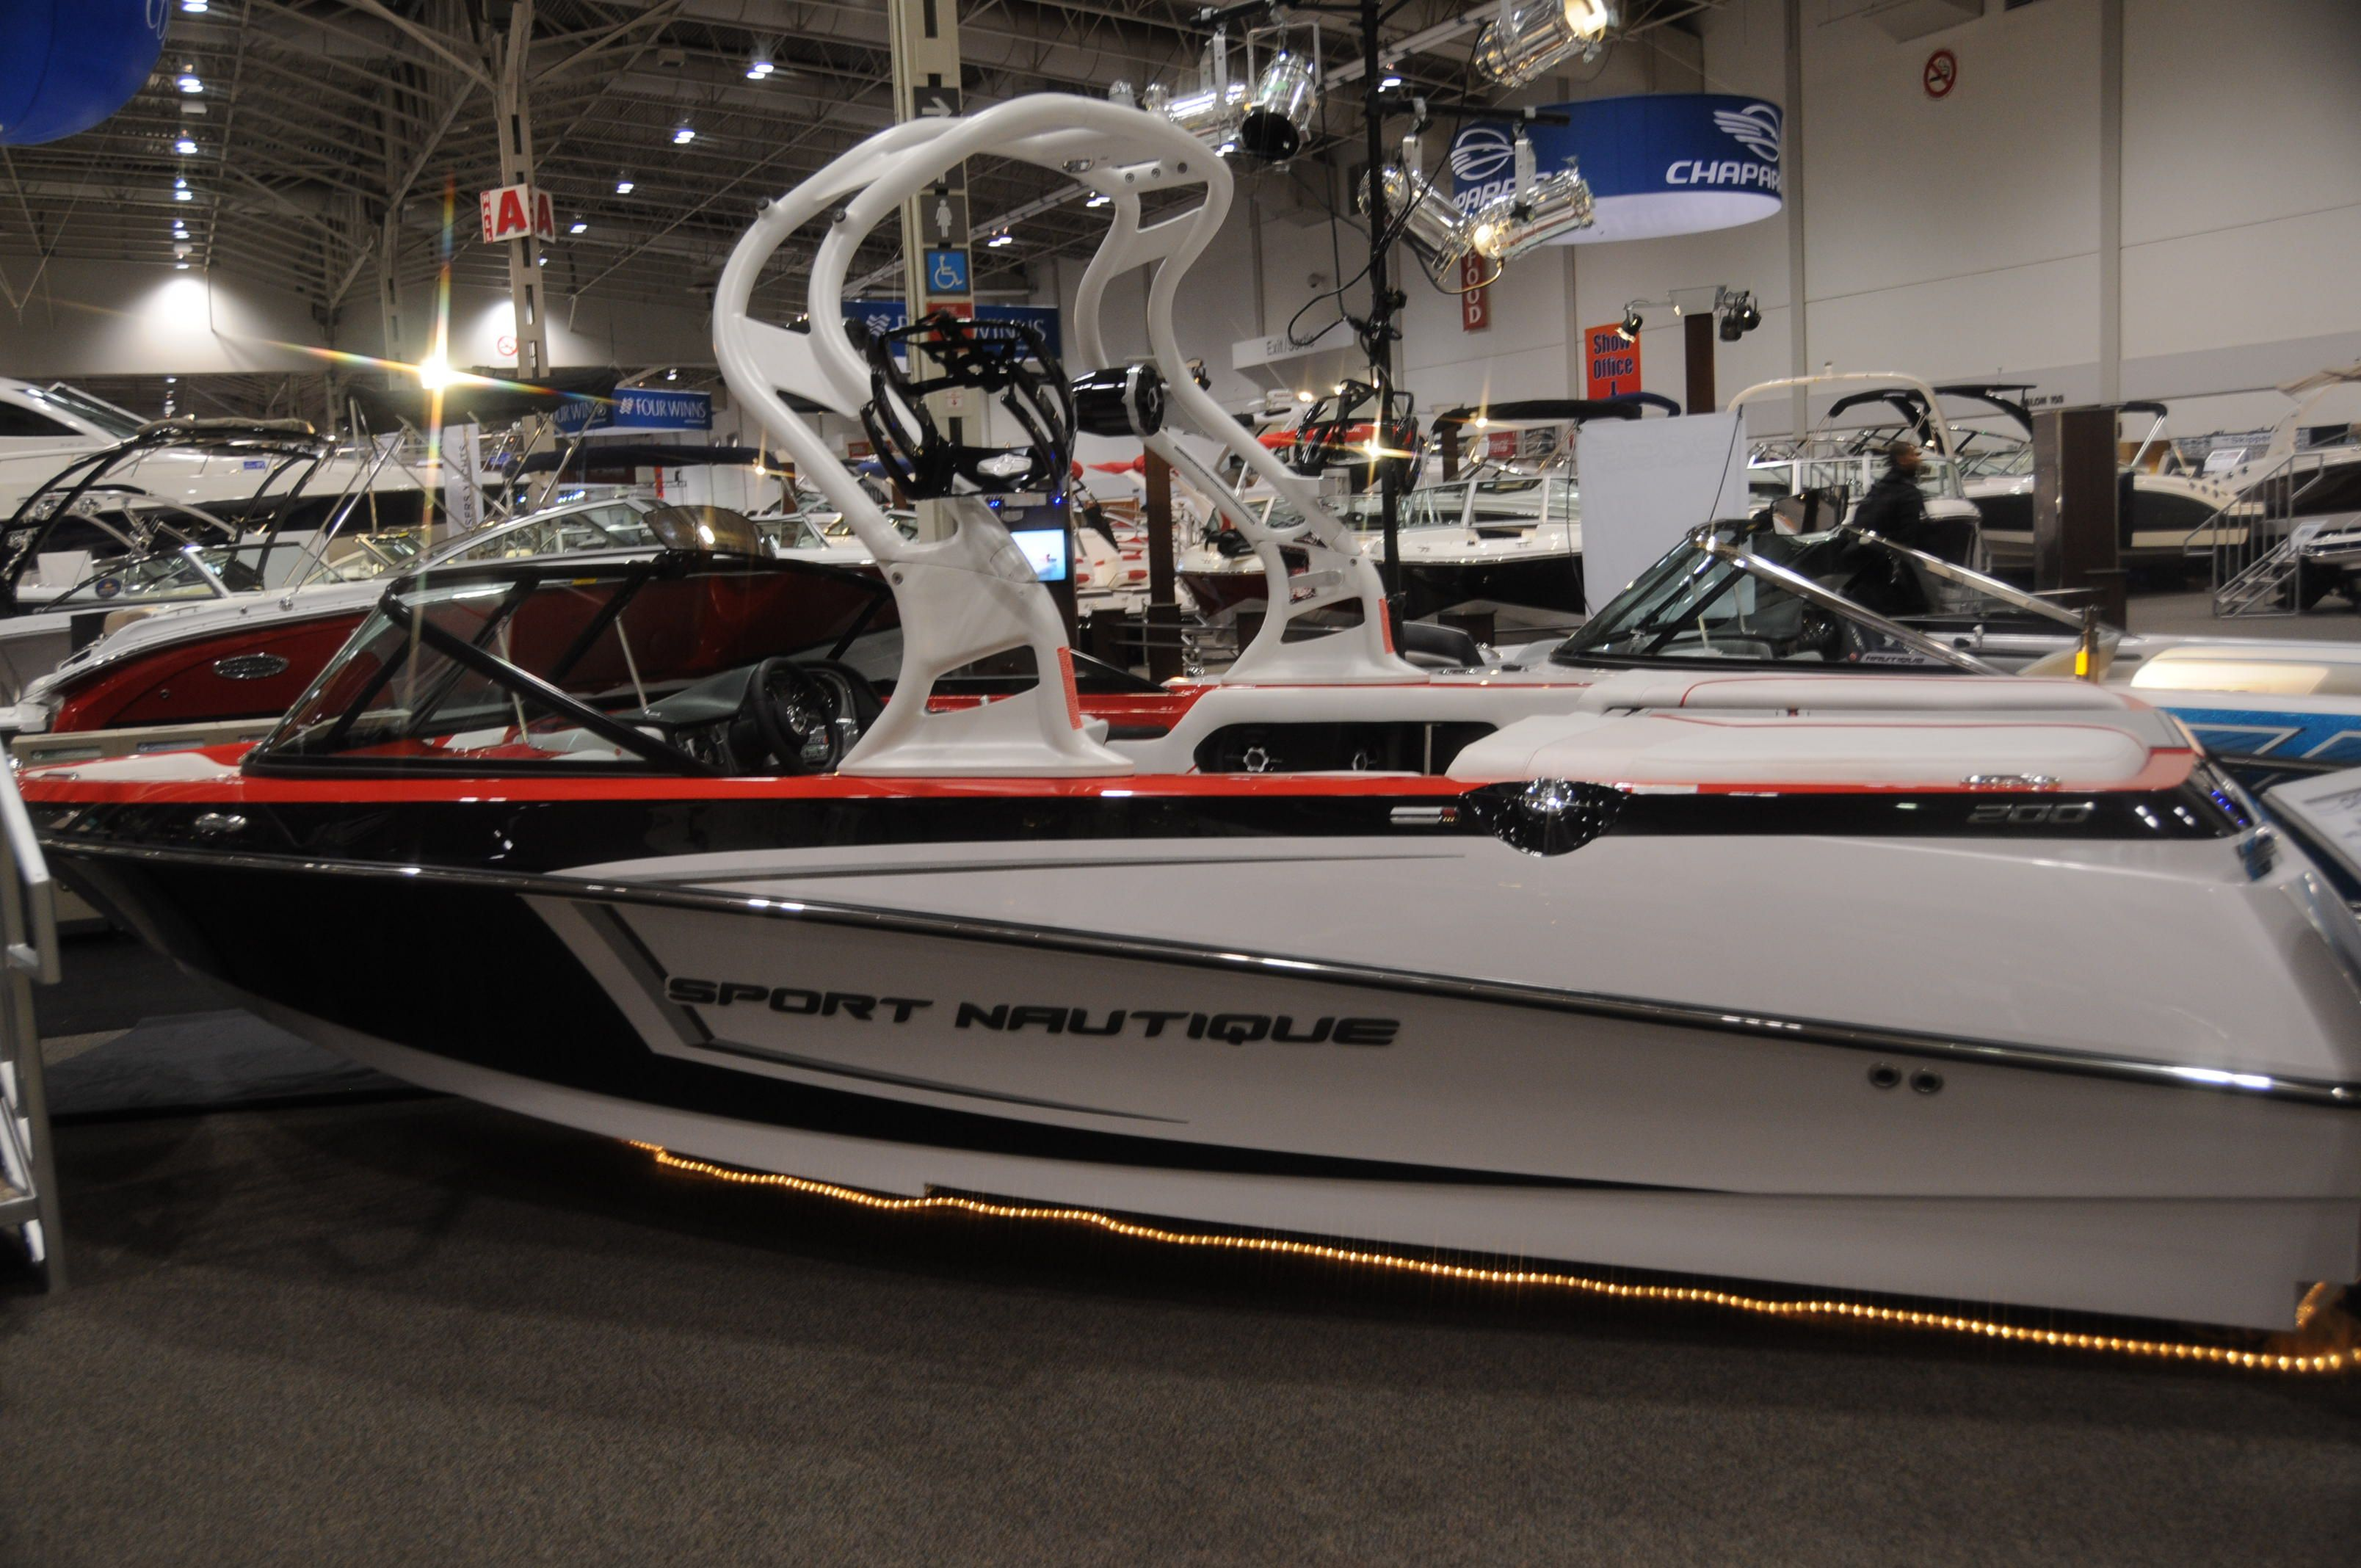 Sport Nautique 200 How Do You Like Those Colours Boat Paint Boat Boat Wraps